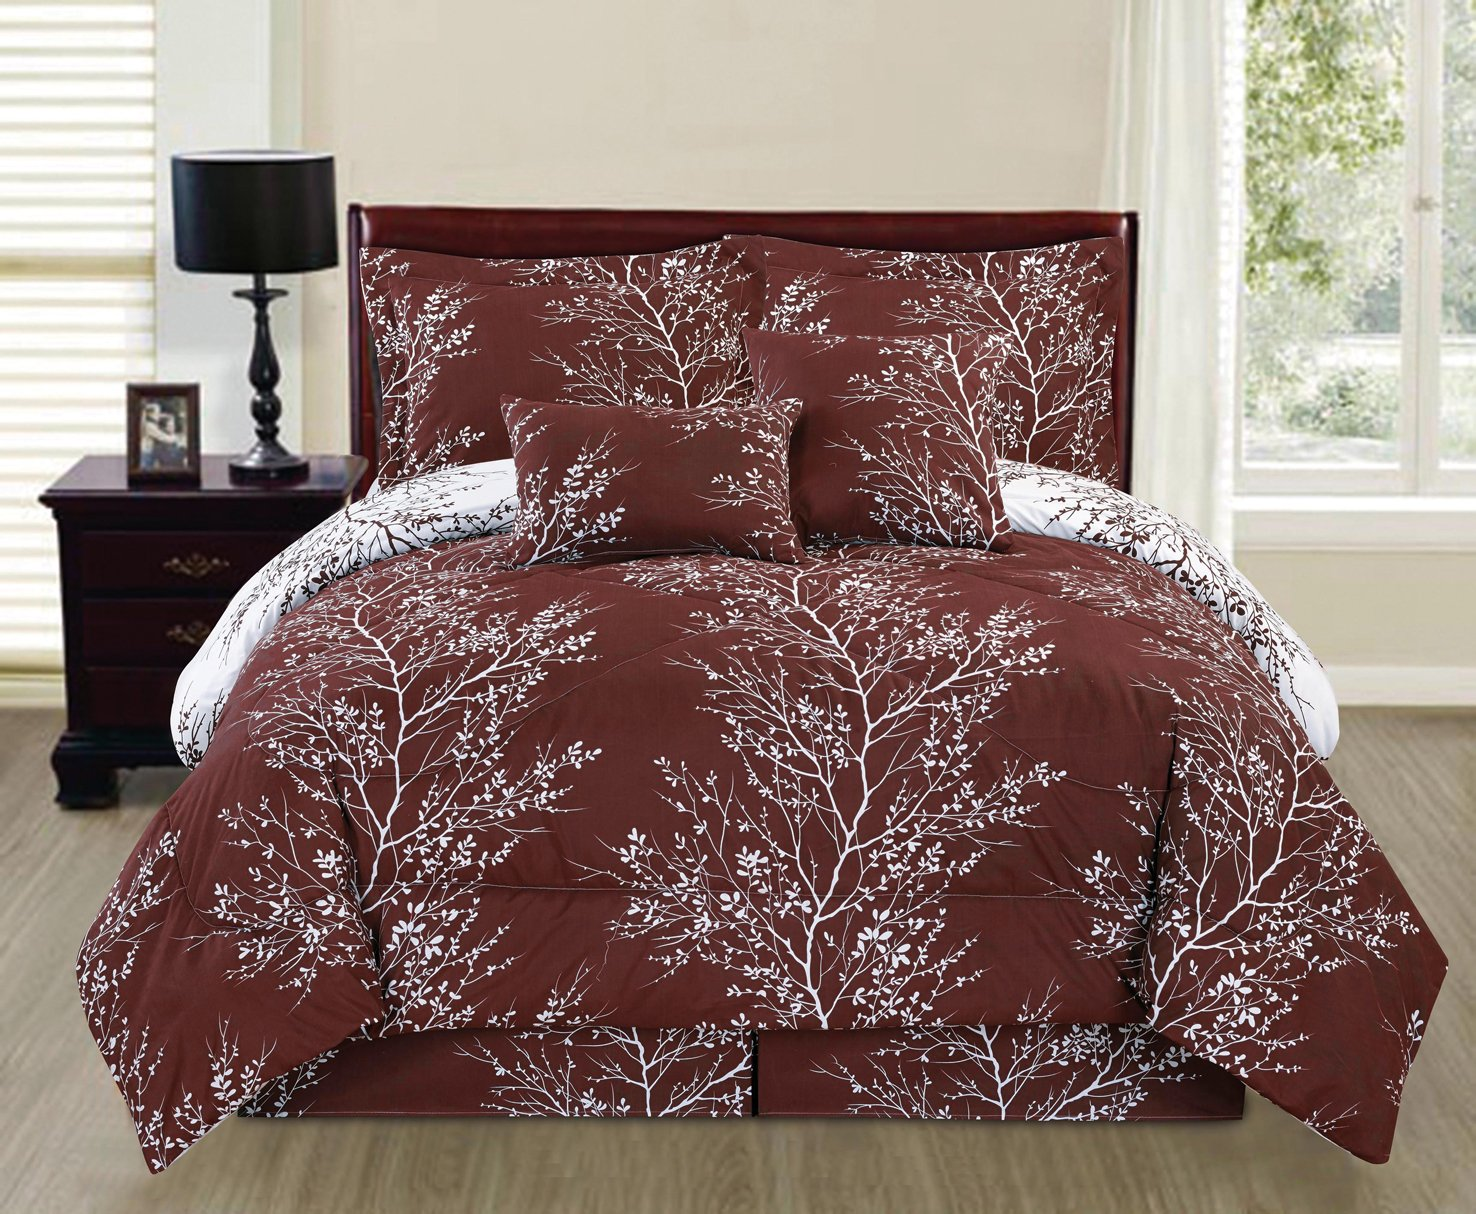 6 Piece Reversible Branches Comforter Set New Bedding (Full, Coffee